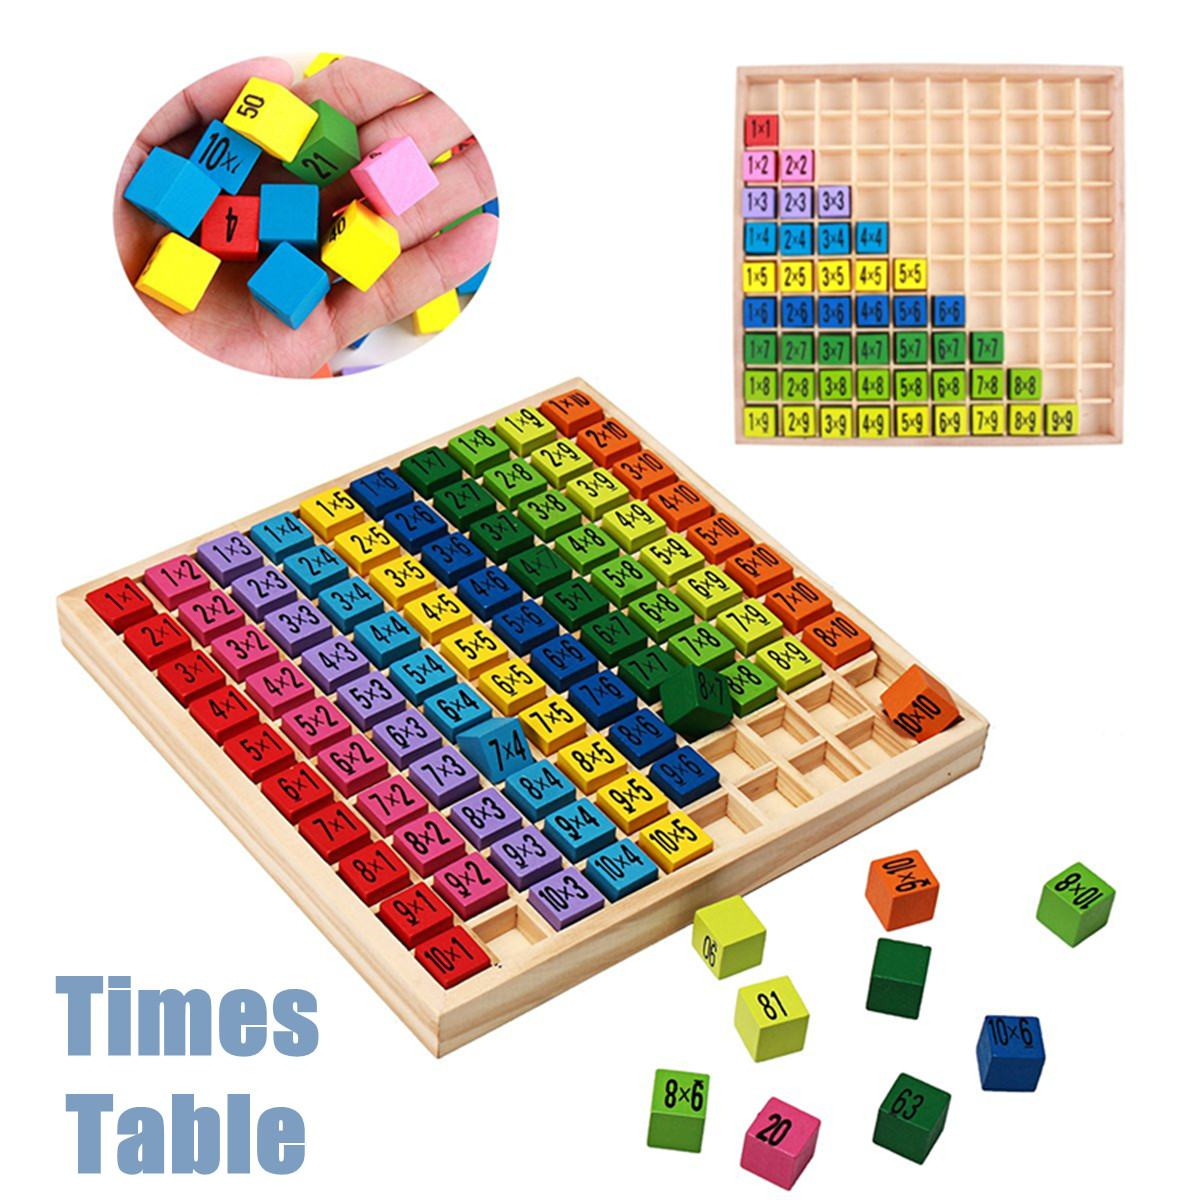 Educational Wooden Times Table Kids Mathematics Learning Toys Blocks Children Gifts Math Toys IQ Develop Colorful 19x19cm